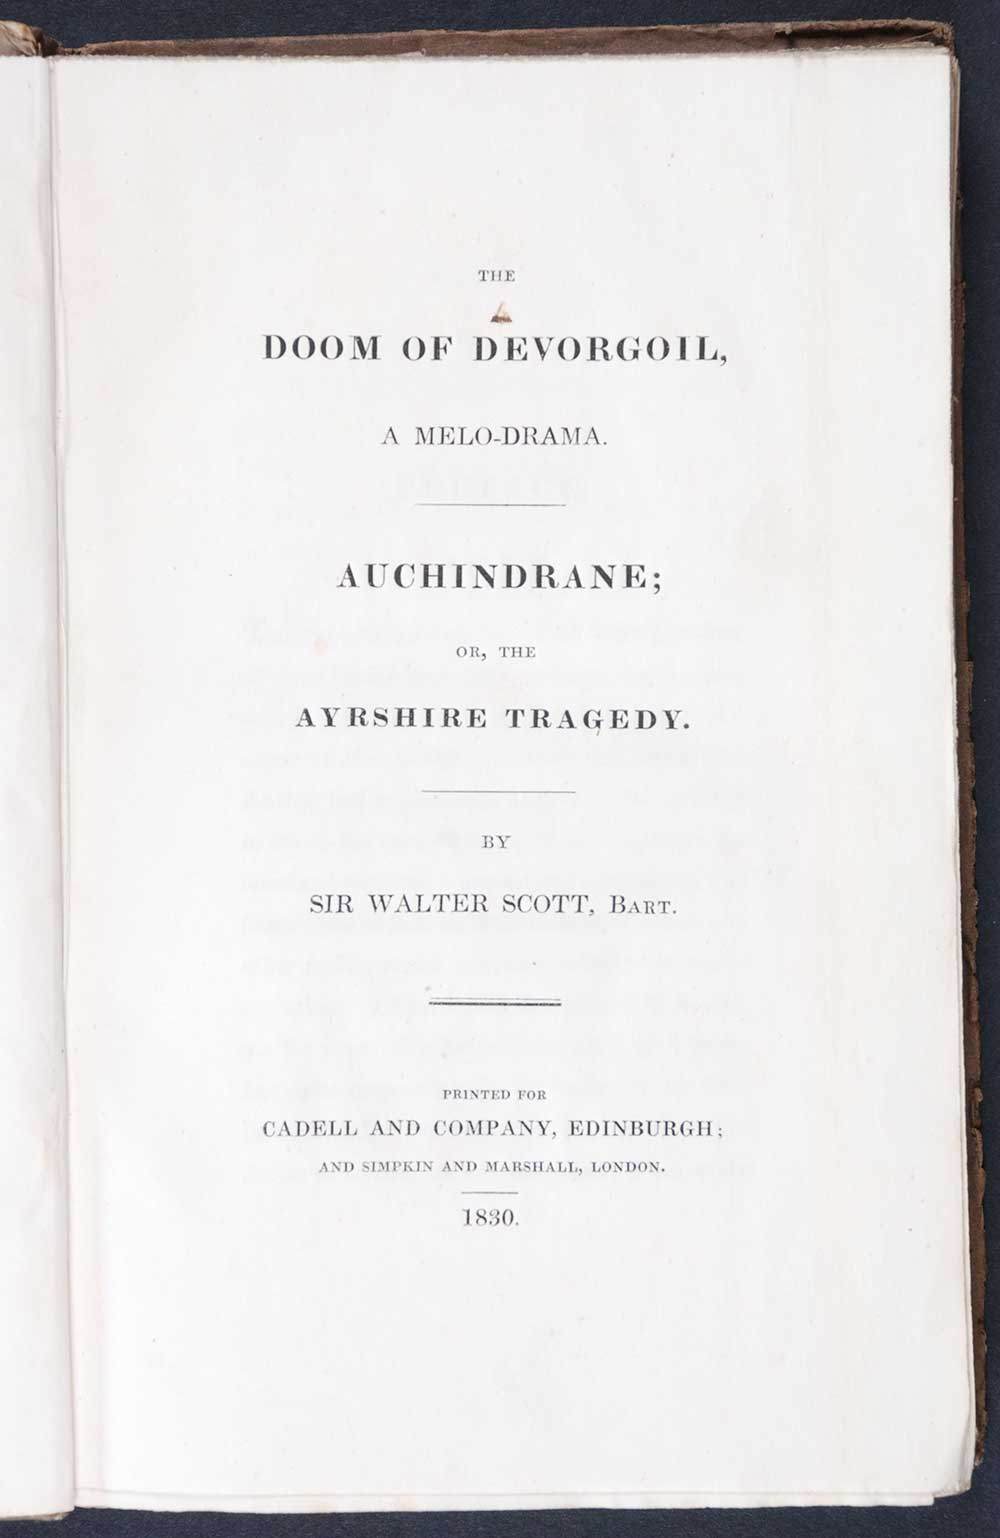 Sir Walter Scott. <em>The doom of Devorgoil: a melo-drama; Auchindrane, or, The Ayrshire tragedy.</em> [1st edition]. Printed for Cadell and Company, Edinburgh; and Simpkin and Marshall, London, 1830.